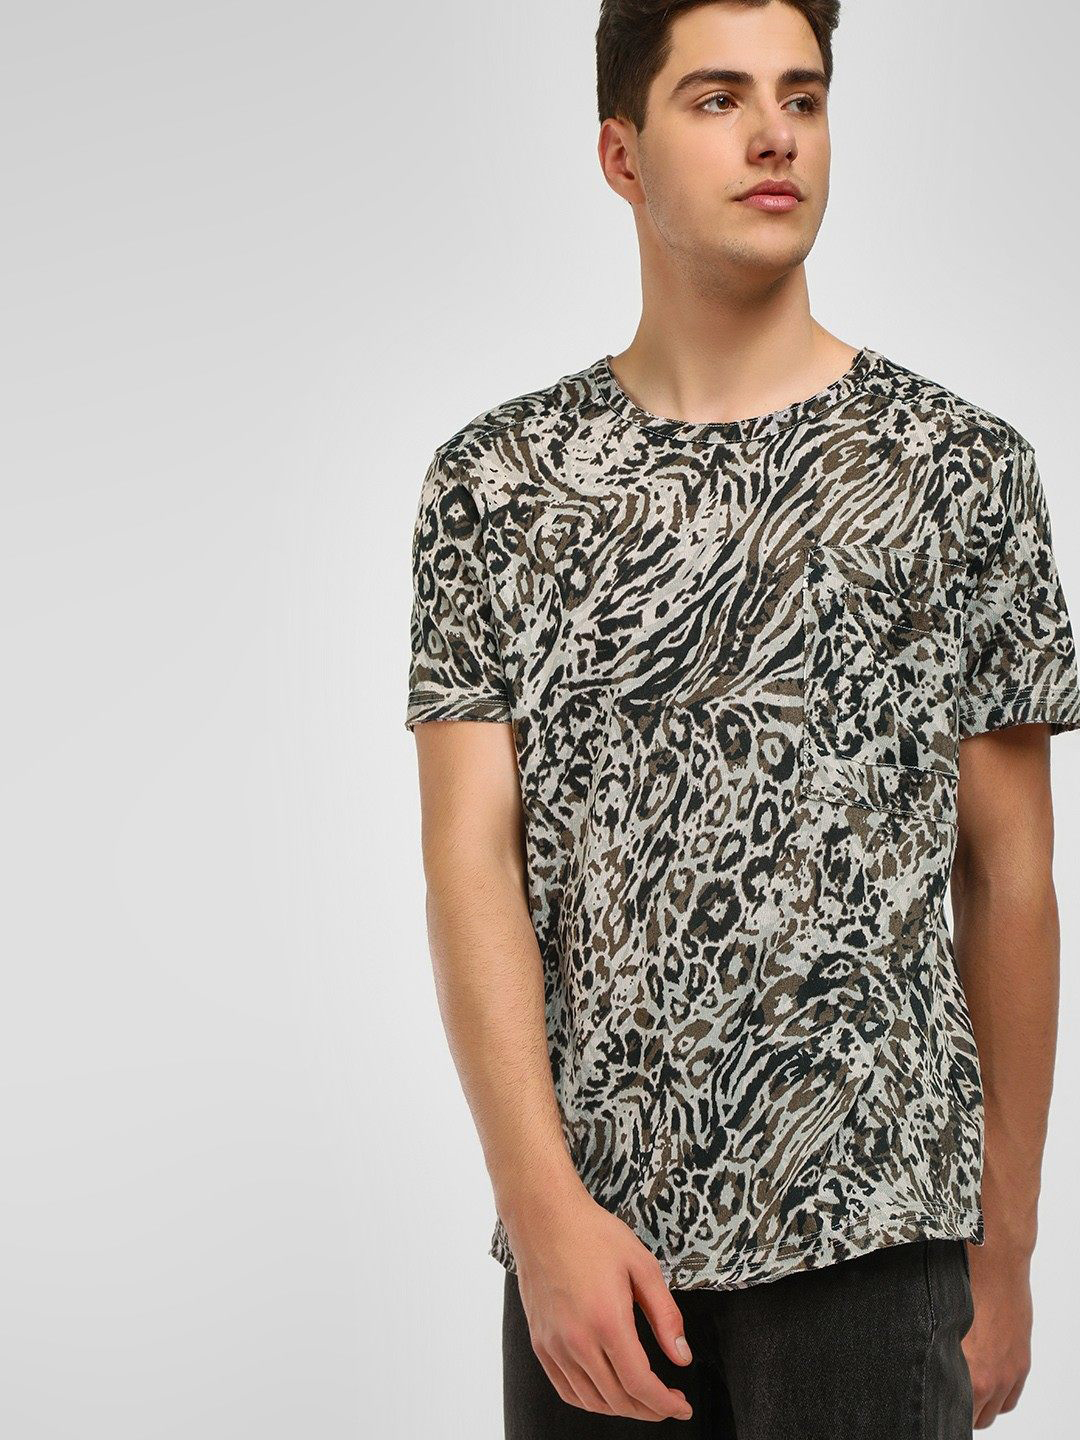 KOOVS Multi Abstract Leopard Print T-Shirt 1